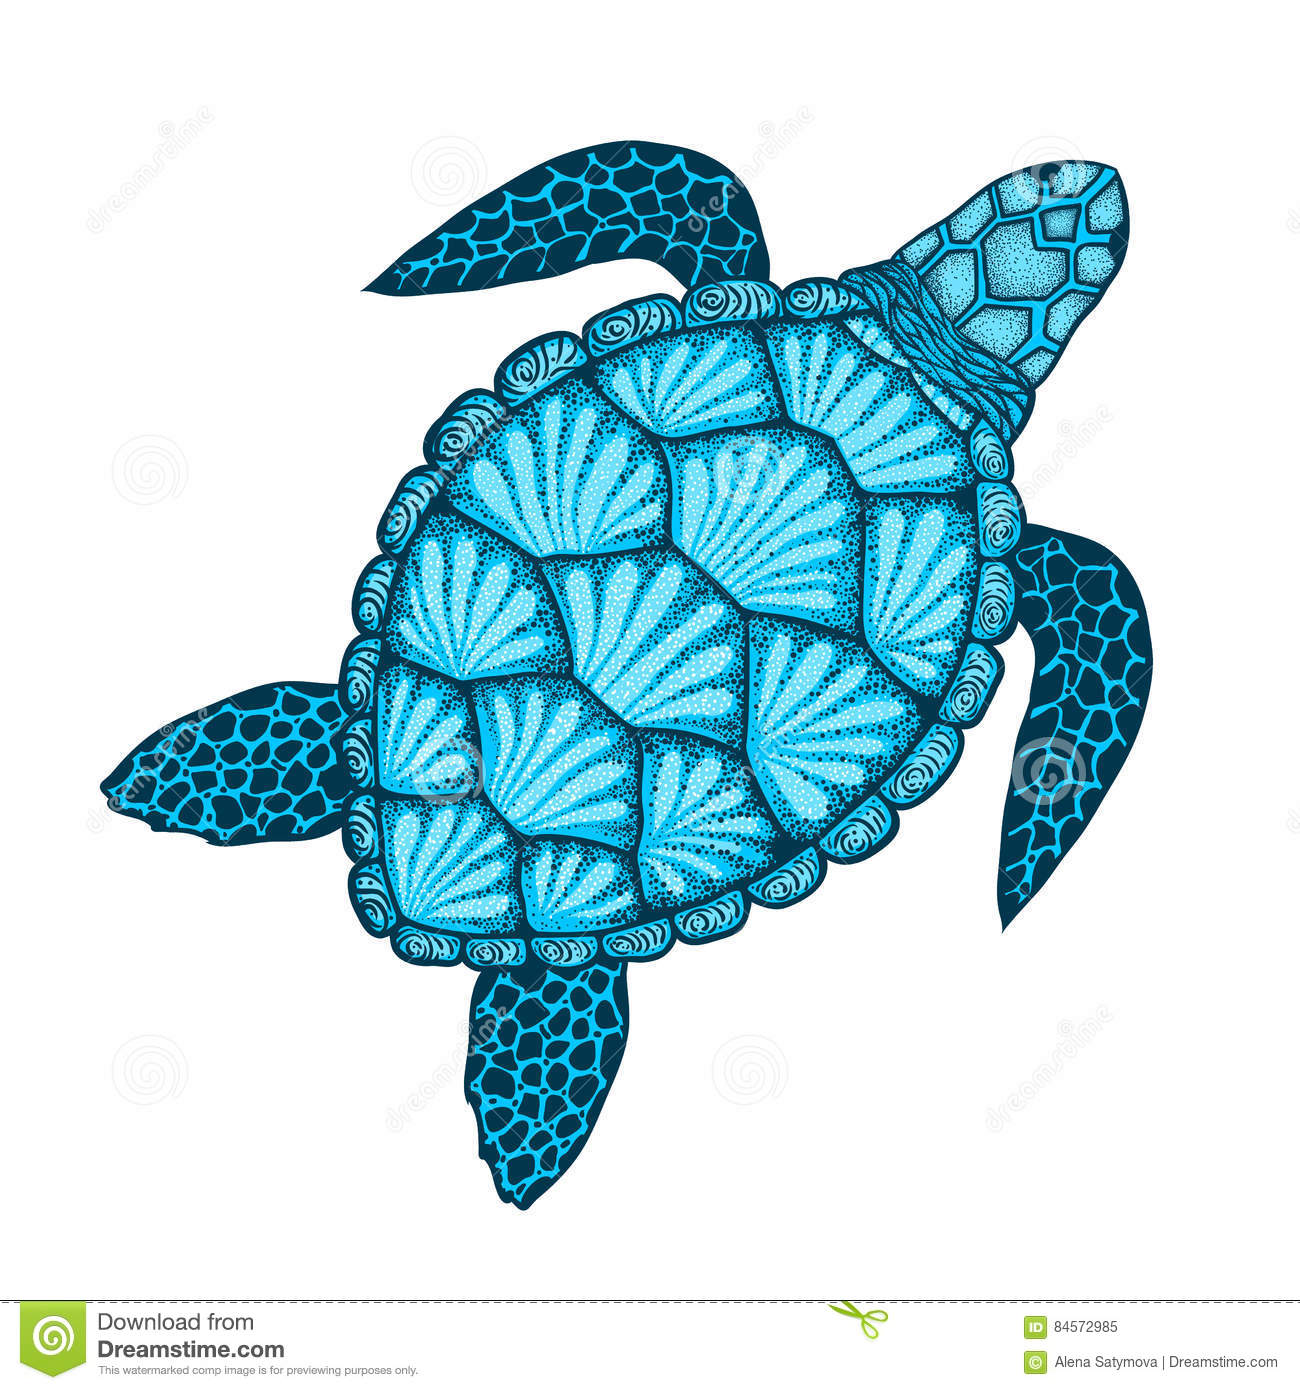 Tortue De Mer Dans Style De Schema Illustration Tiree Par La Main De